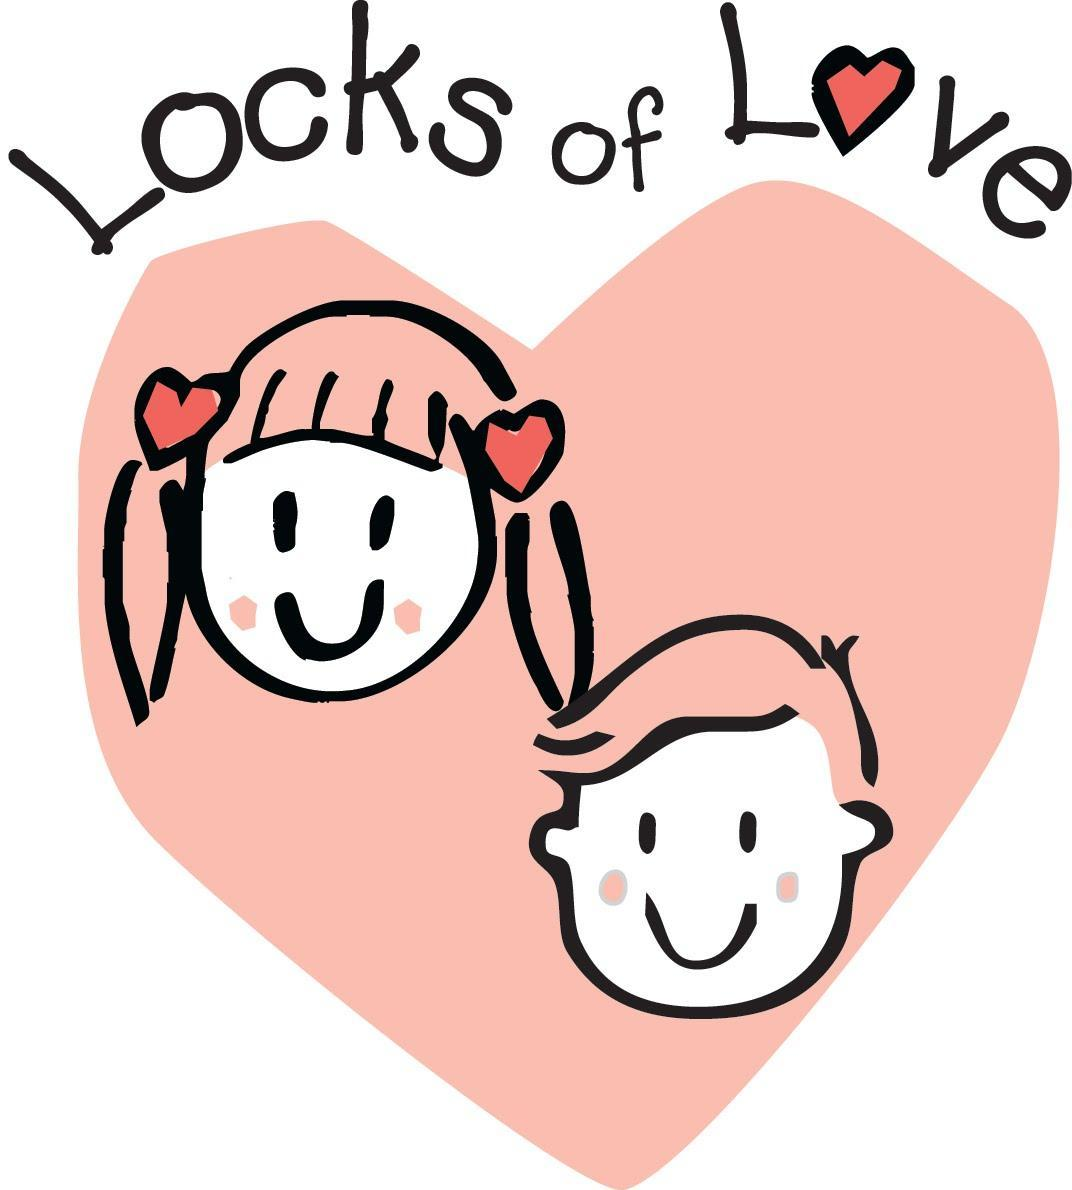 Can Anyone Tell Me About Locks of Love?